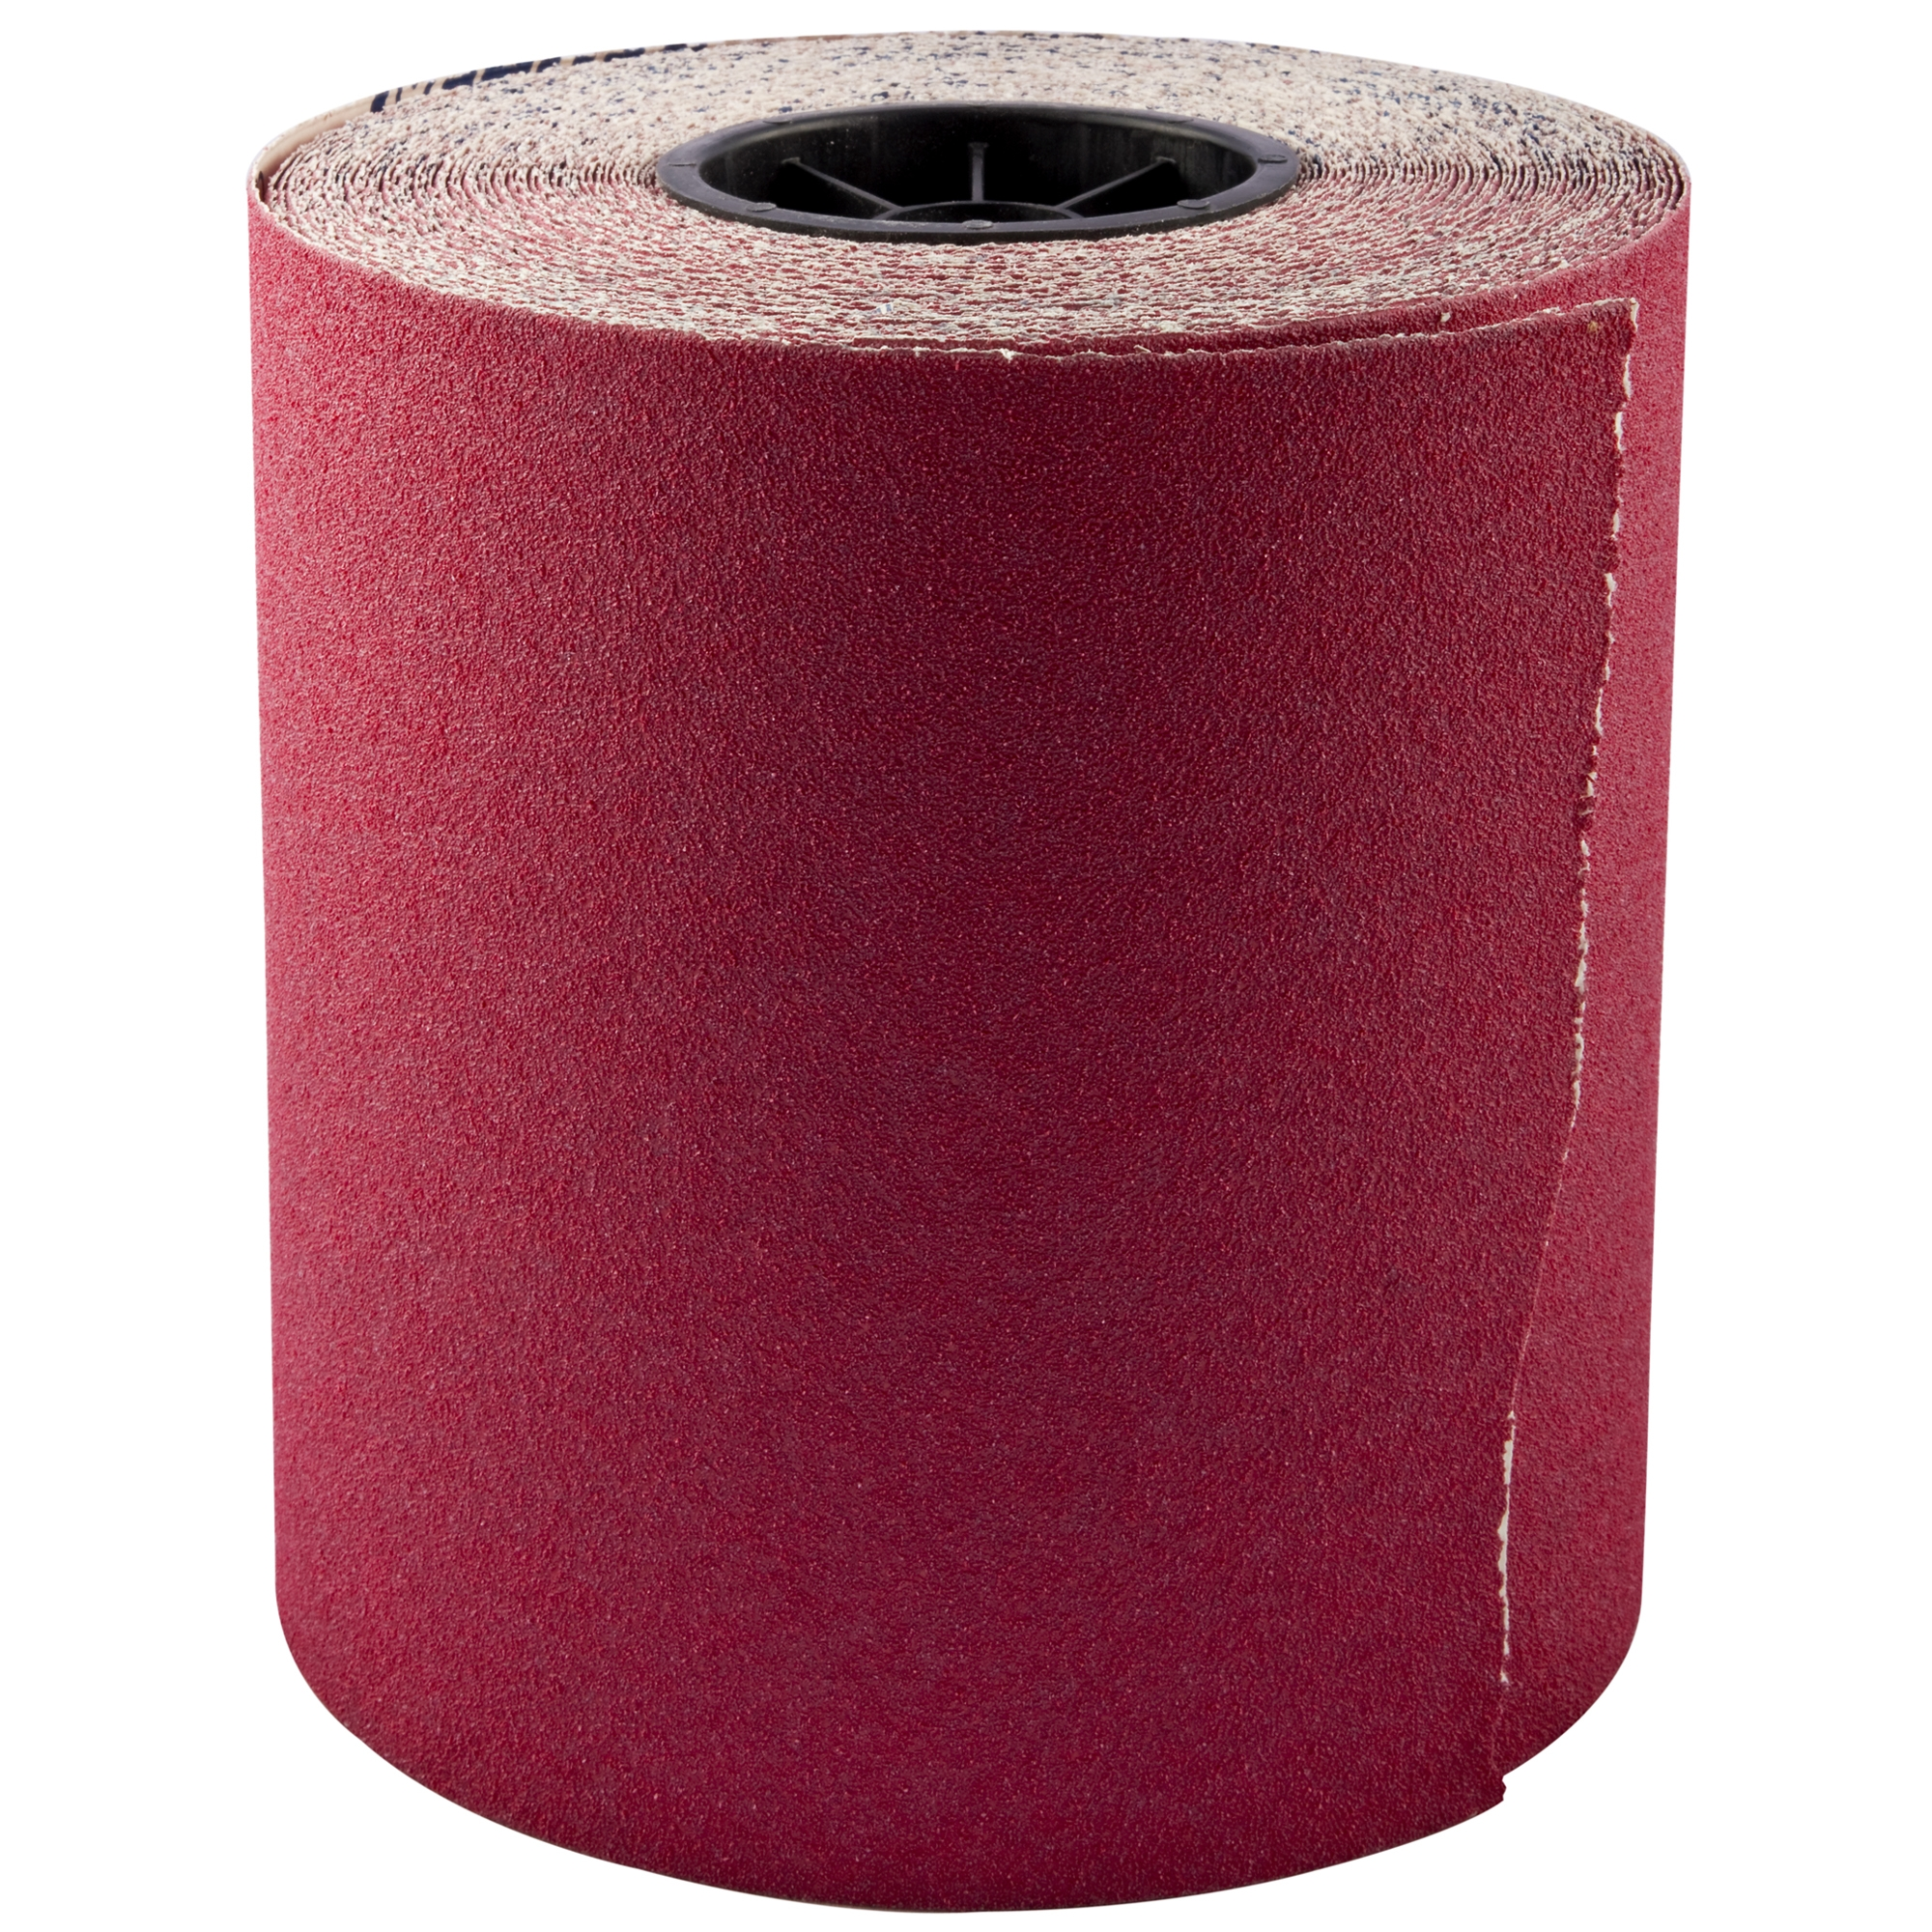 "Norton Red Heat Paper 8"" x 25 yd - 60 Grit Floor Sanding Roll"